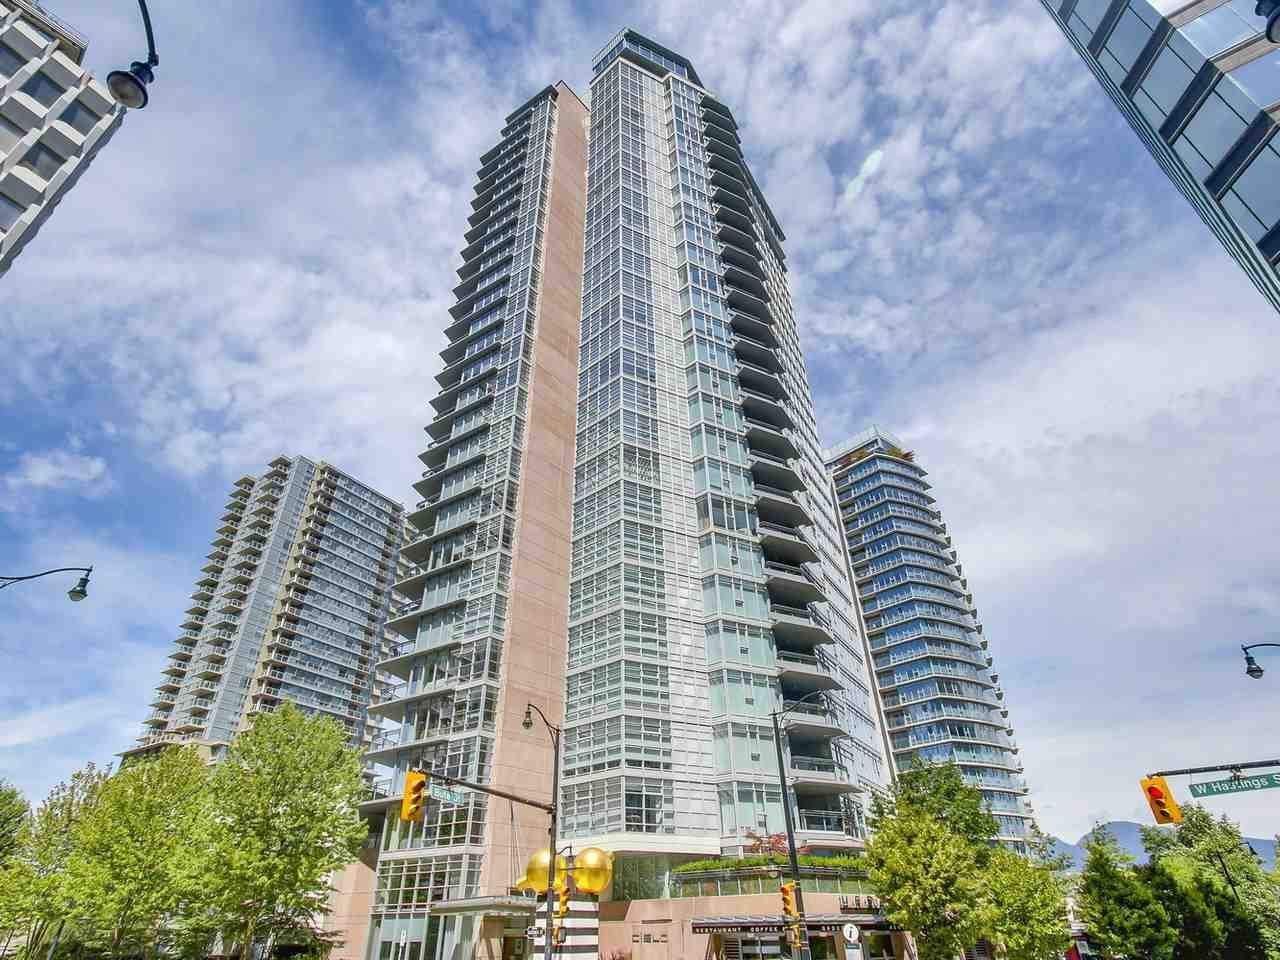 """Main Photo: 2301 1205 W HASTINGS Street in Vancouver: Coal Harbour Condo for sale in """"CIELO"""" (Vancouver West)  : MLS®# R2191331"""